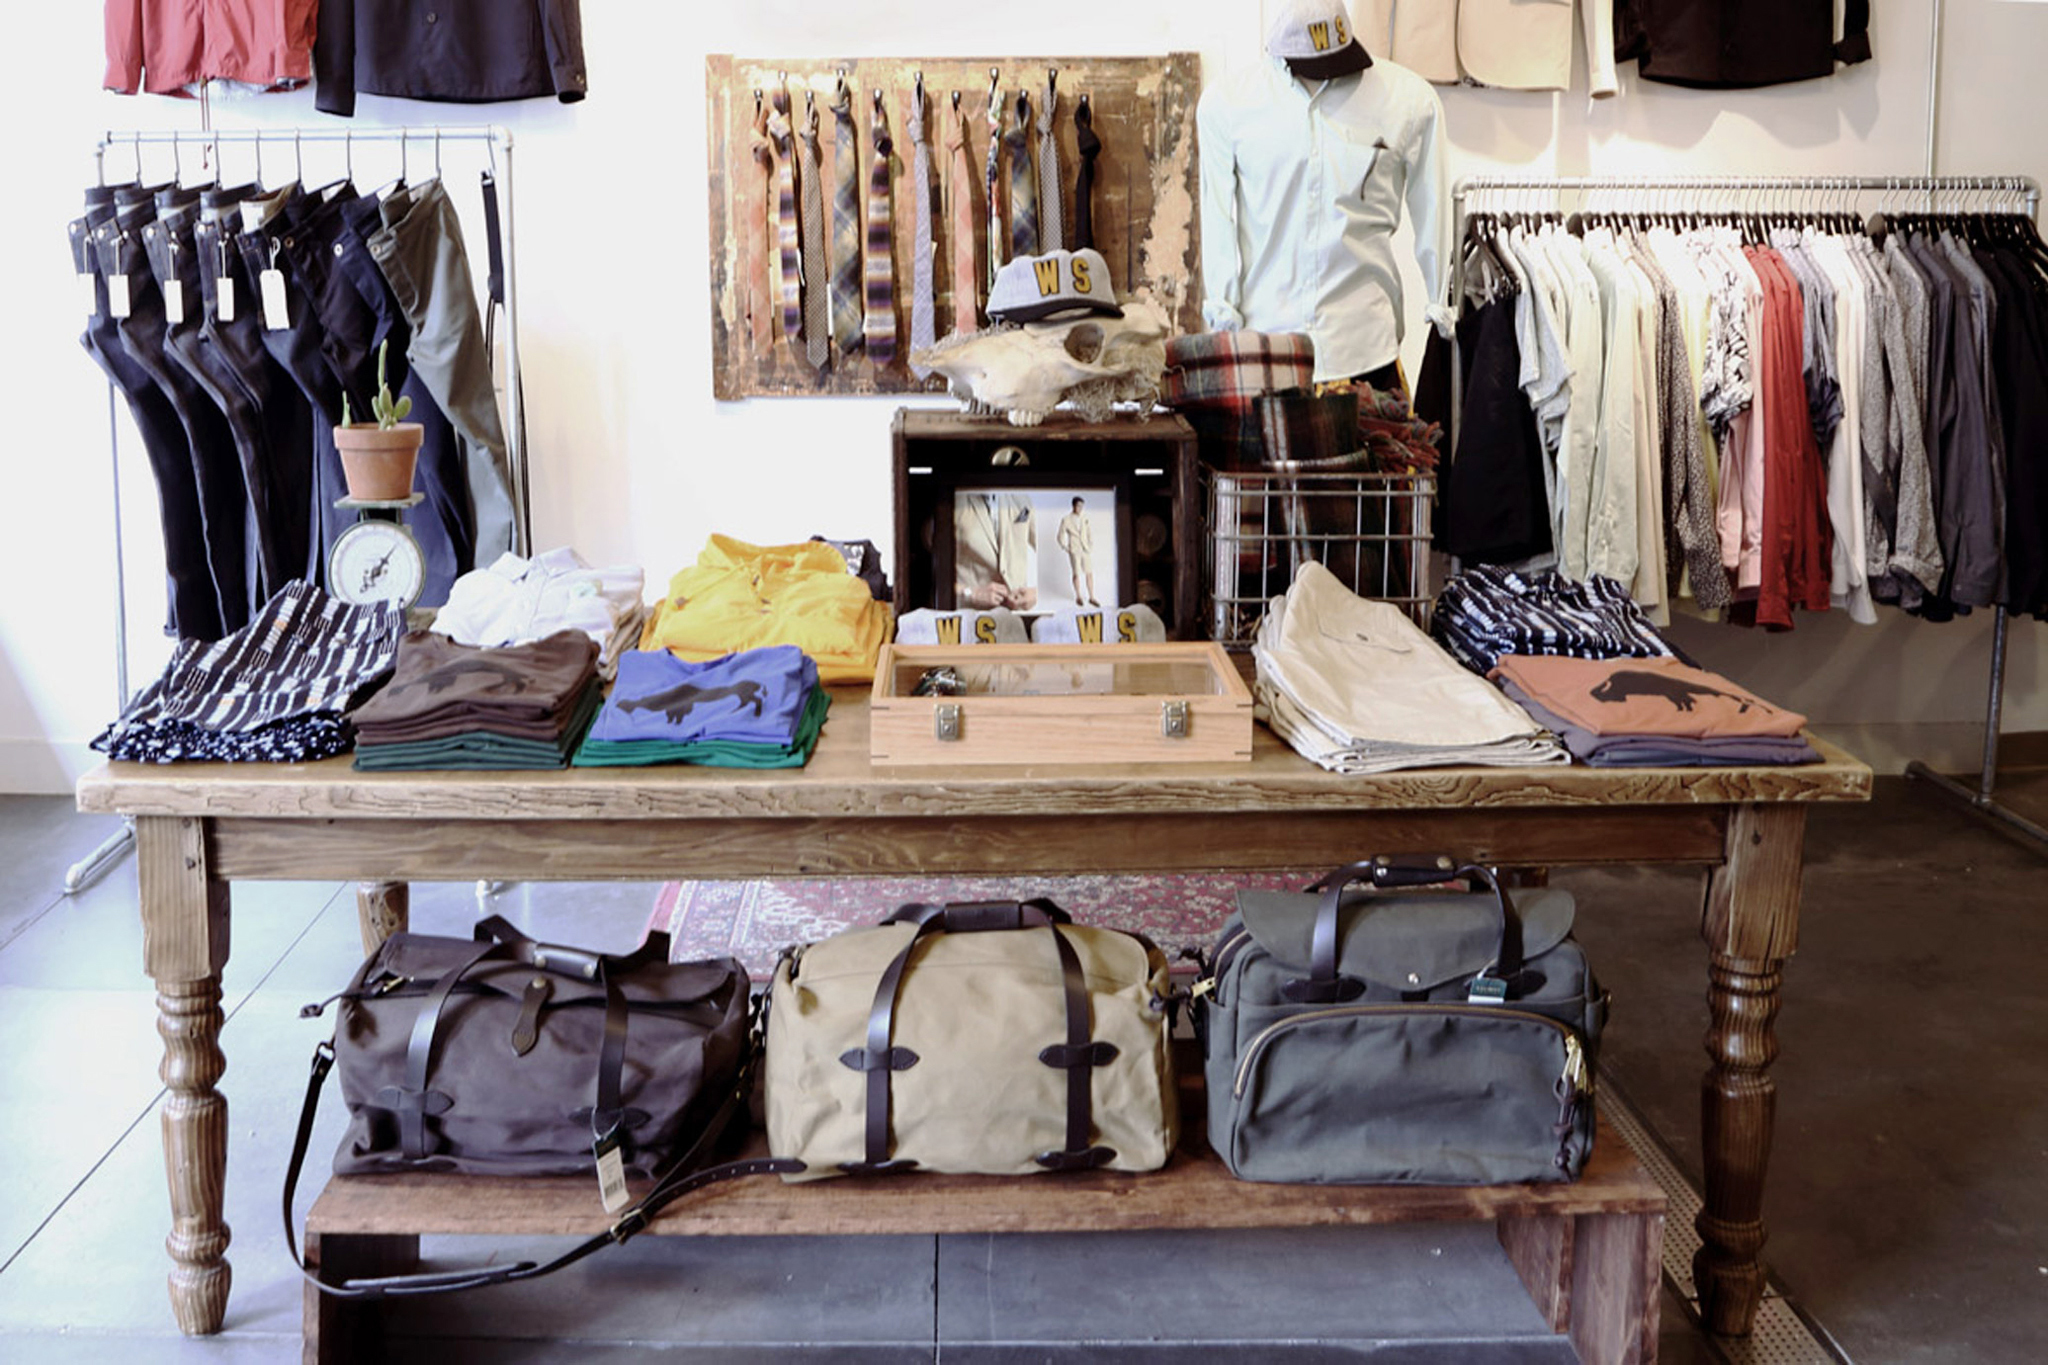 The best clothing stores in San Francisco